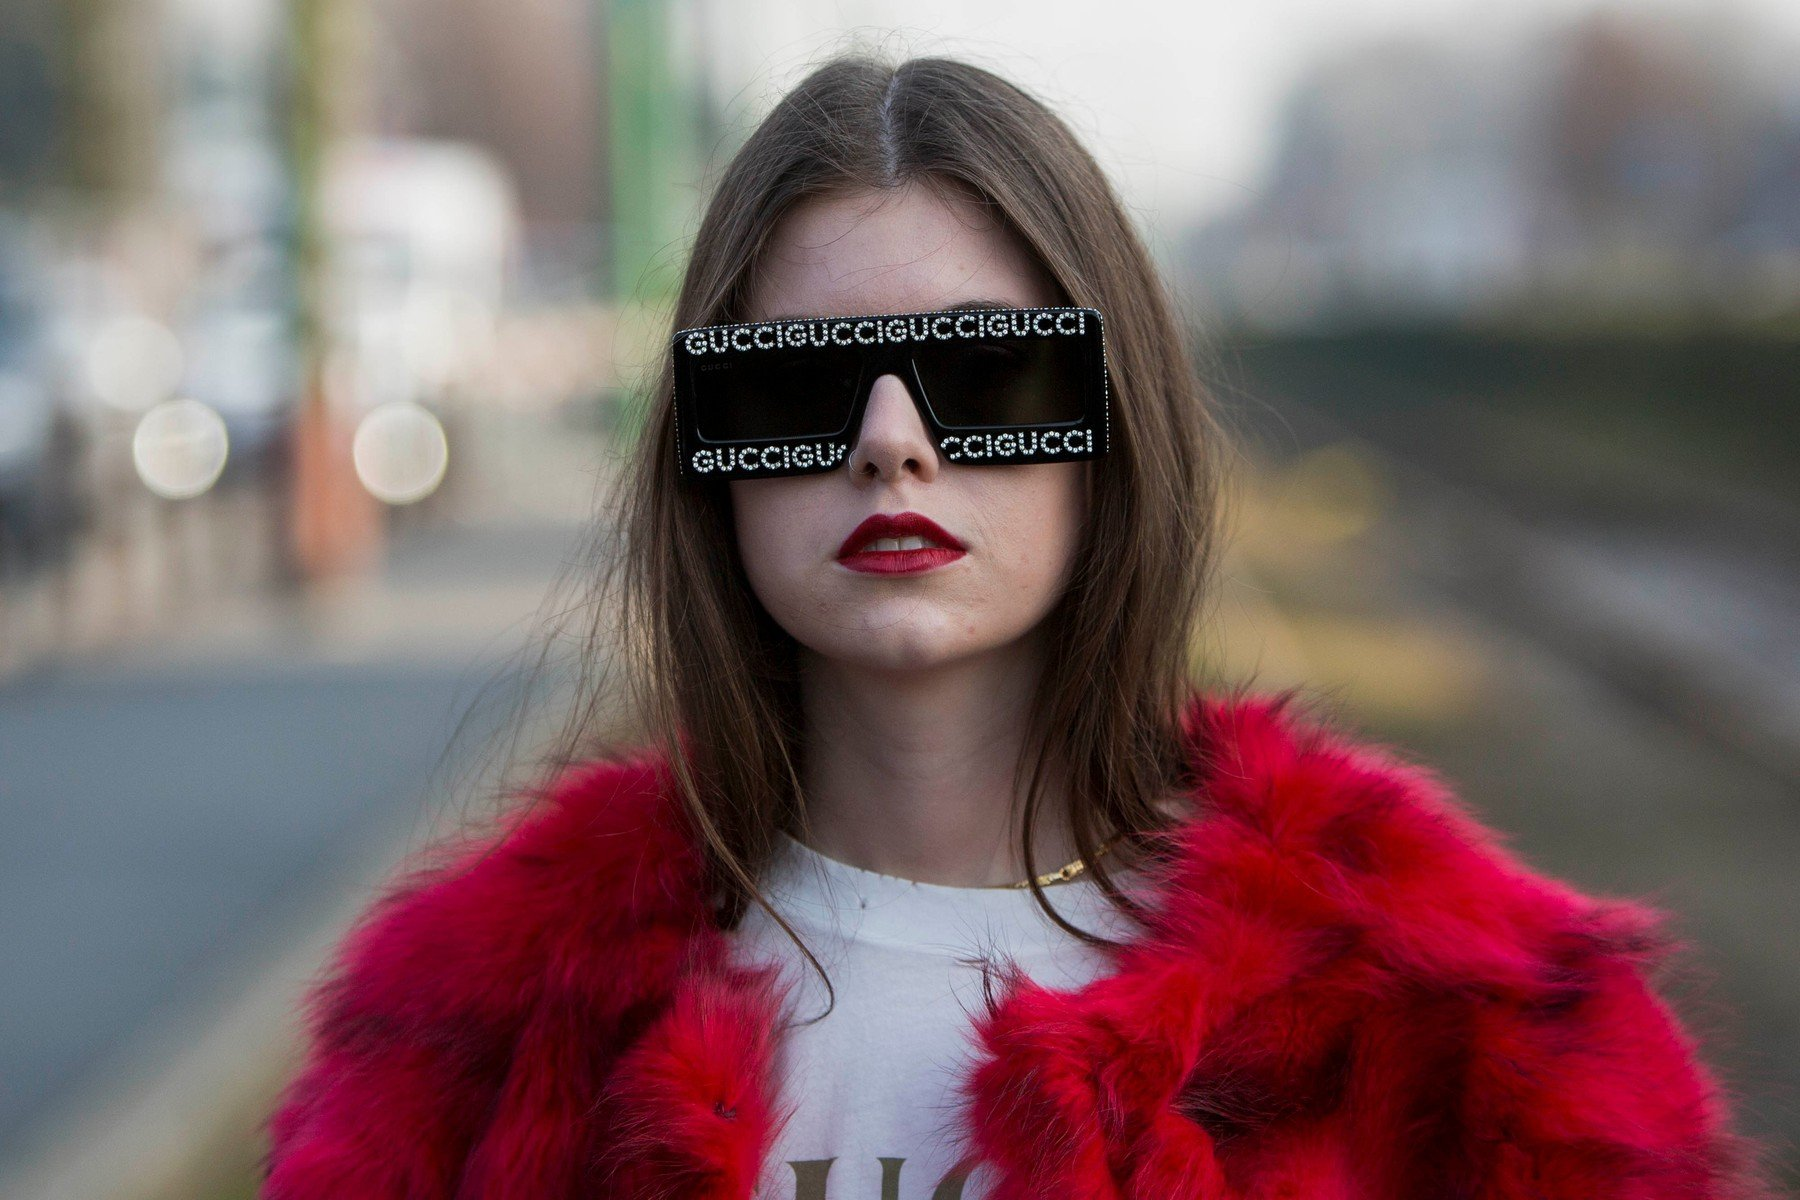 Fashion: street style at Milan Fashion Week 2019 outside of the Gucci show in Milan on February 20, 2019. 20 Feb 2019, Image: 415232667, License: Rights-managed, Restrictions: World Rights, Model Release: no, Credit line: Profimedia, Mega Agency